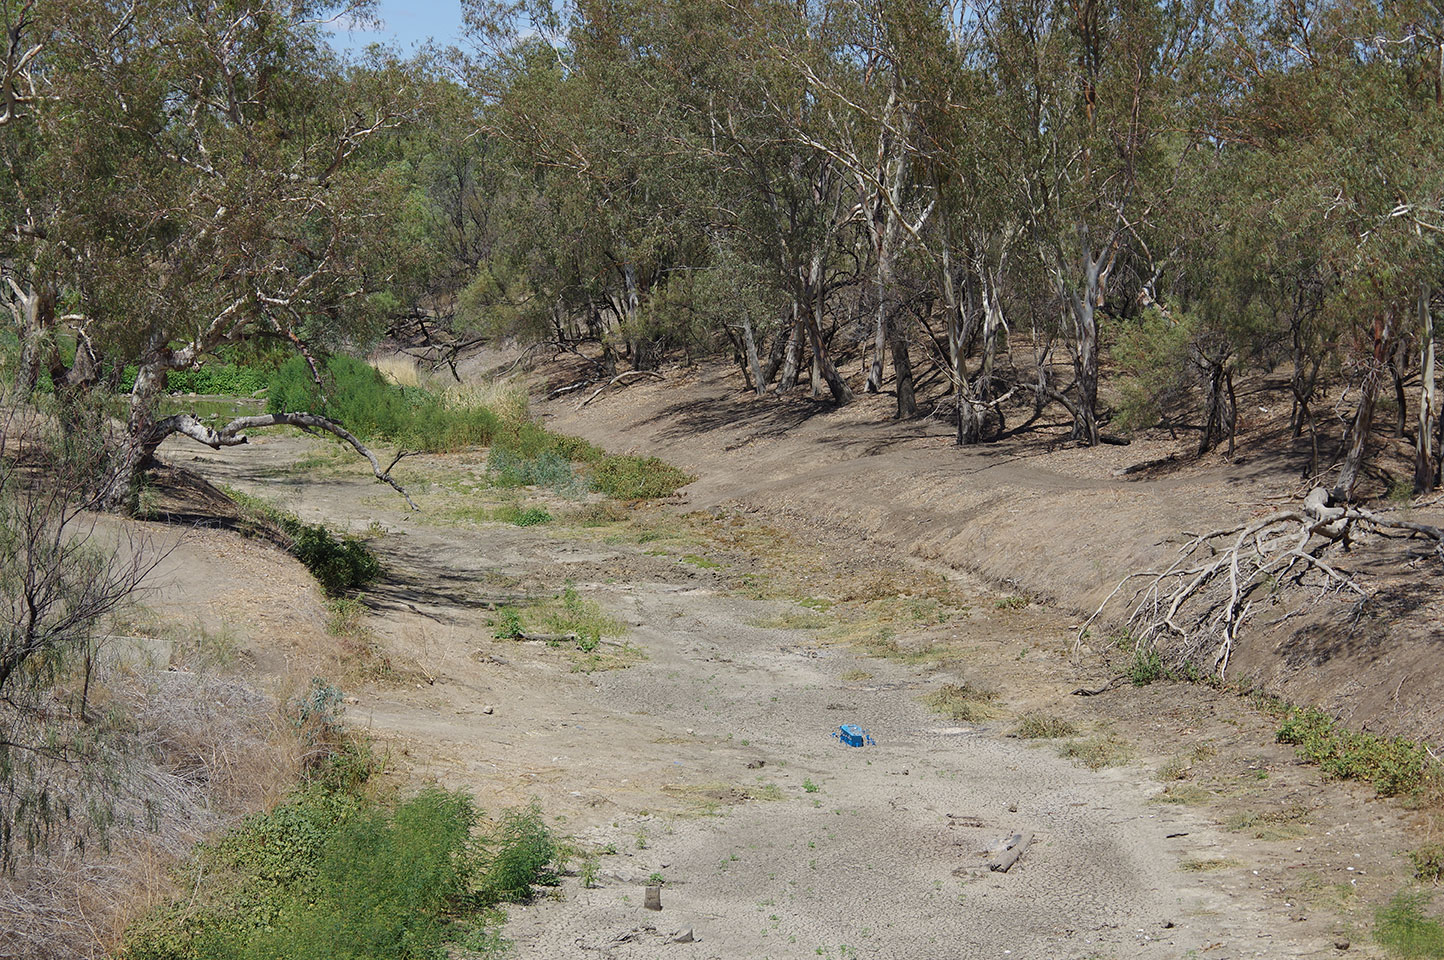 The Namoi River at Walgett was allowed to dry for months in 2018 and 2019 – causing a food and water security crisis.